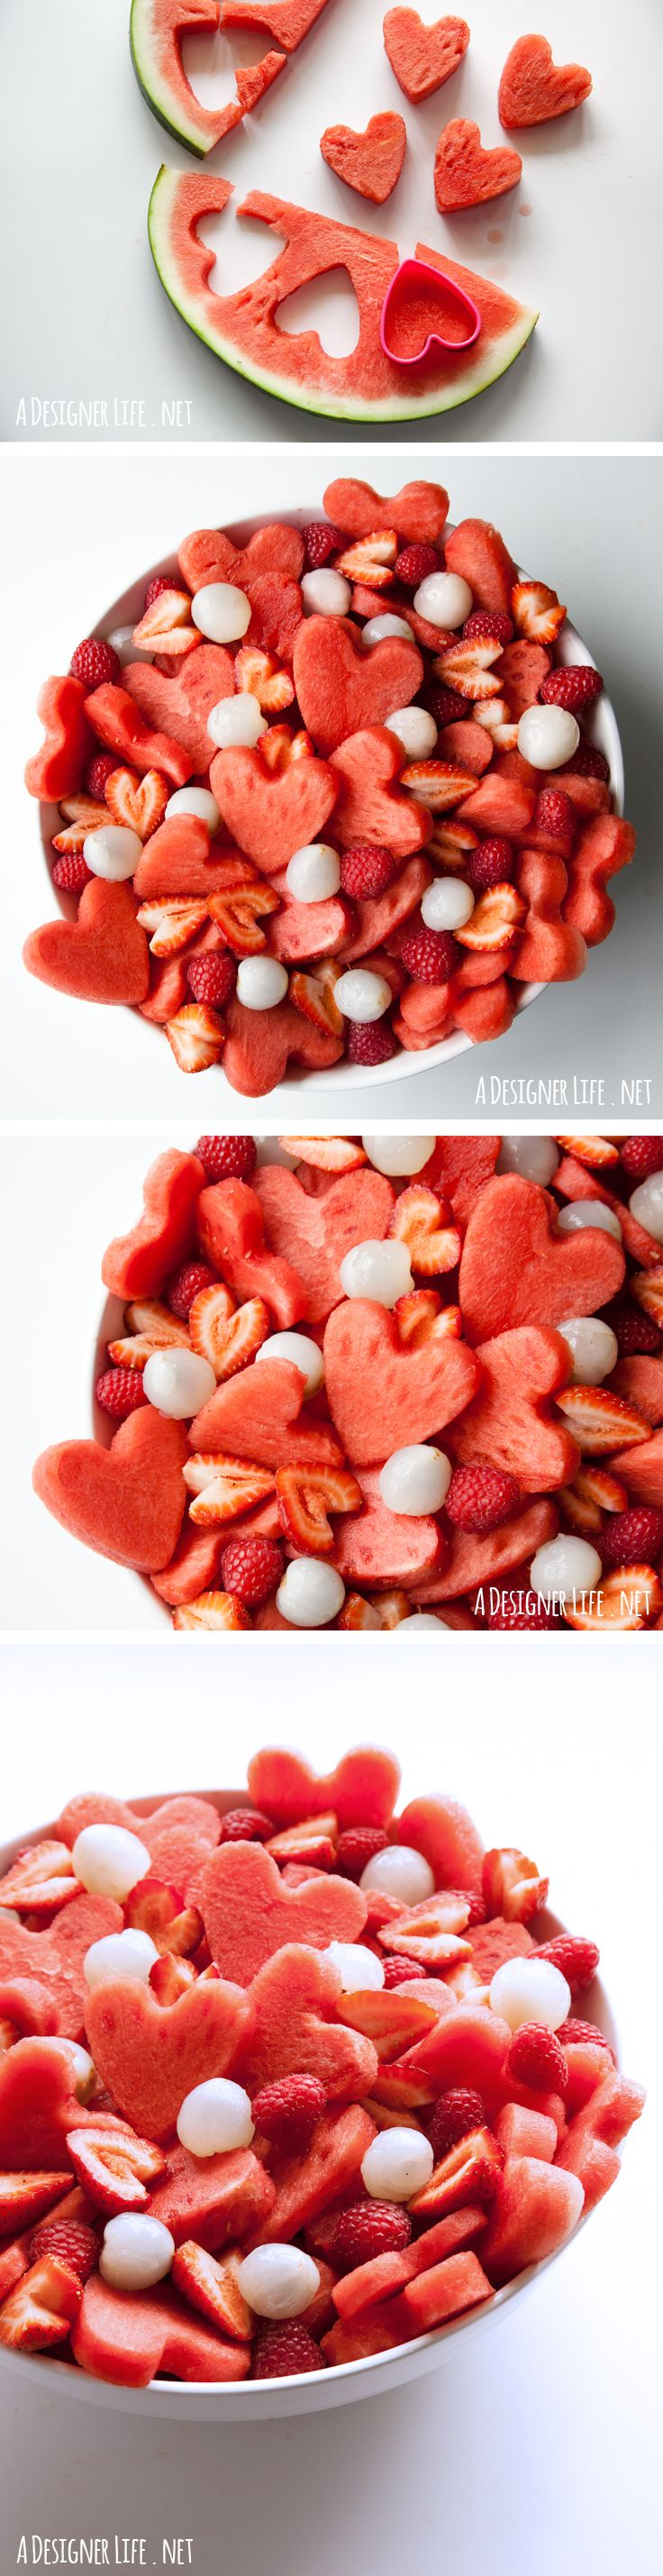 Watermelon Heart Fruit Salad!